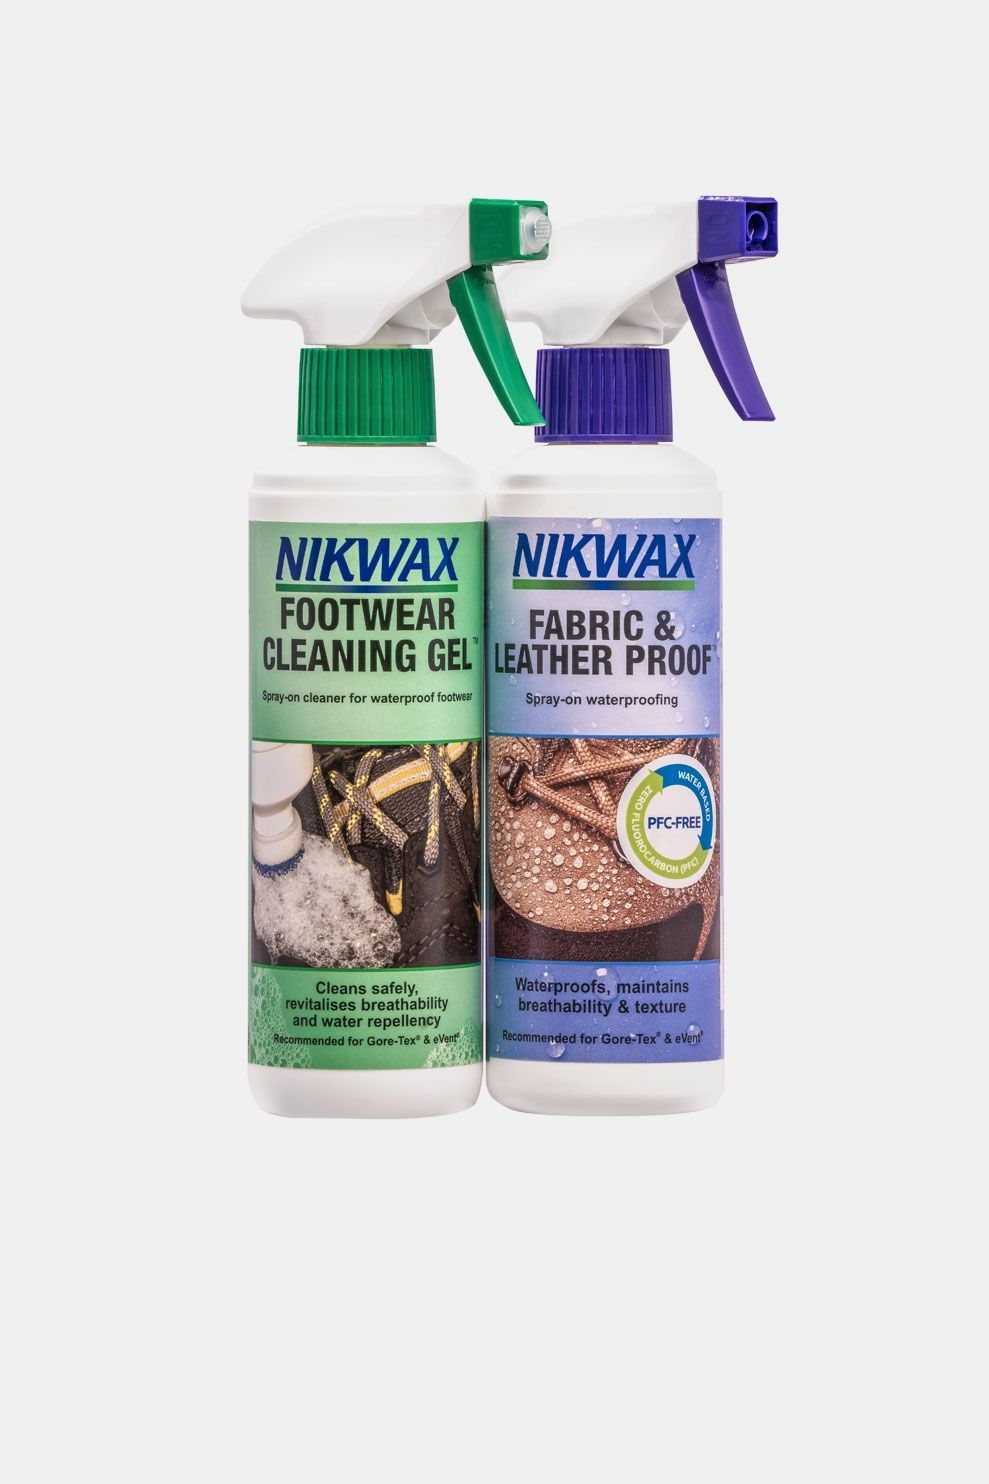 Nikwax Footwear Cleaning Gel Fabric Leather Spray Twin Pack Geen Kleur